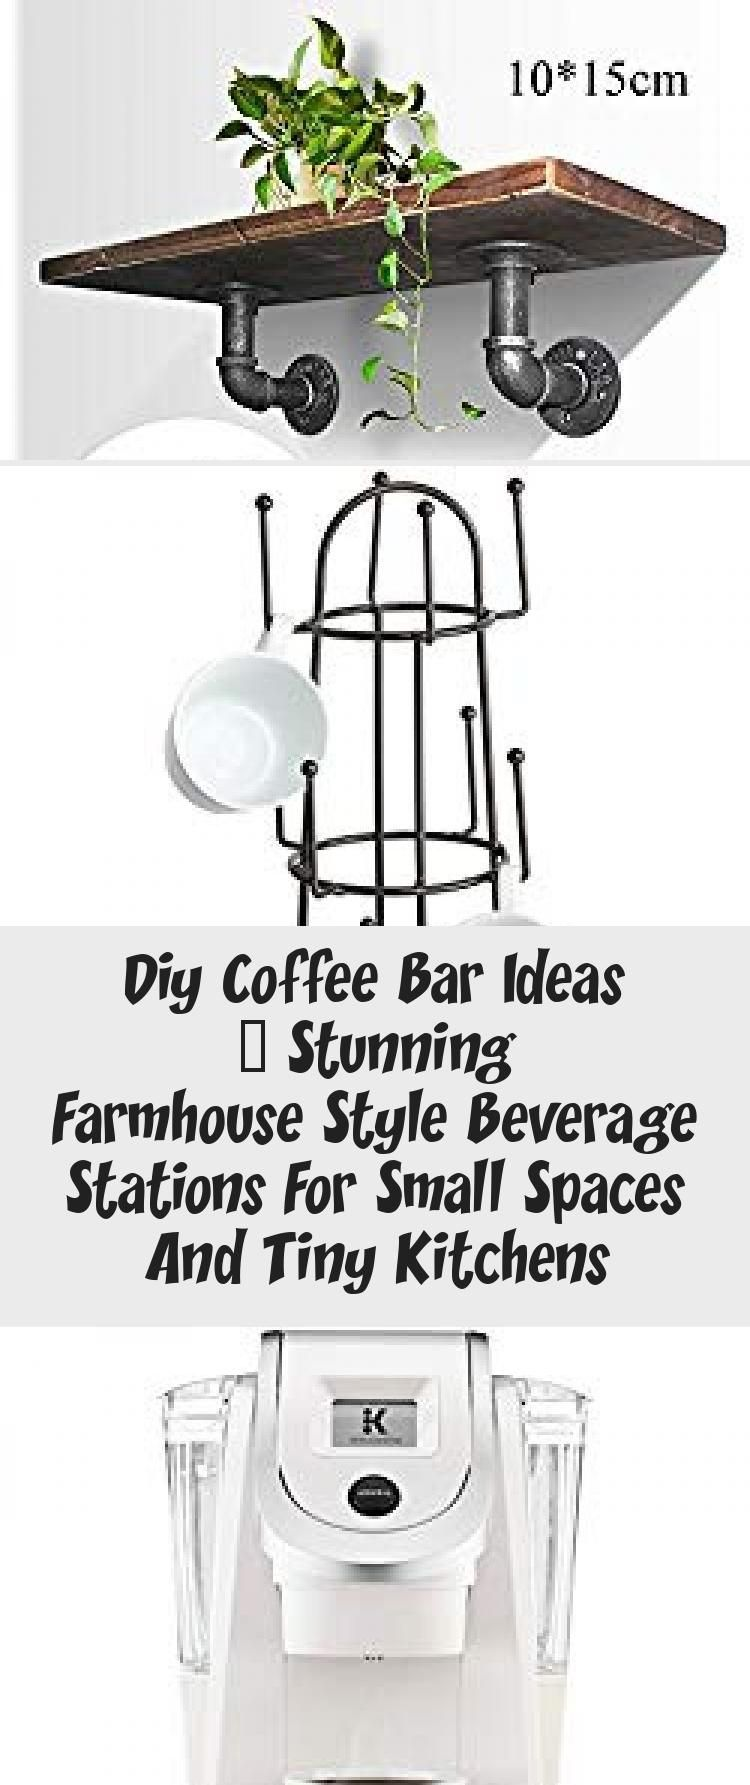 Photo of Diy Coffee Bar Ideas – Stunning Farmhouse Style Beverage Stations For Small Spaces And Tiny Kitchens – Decor